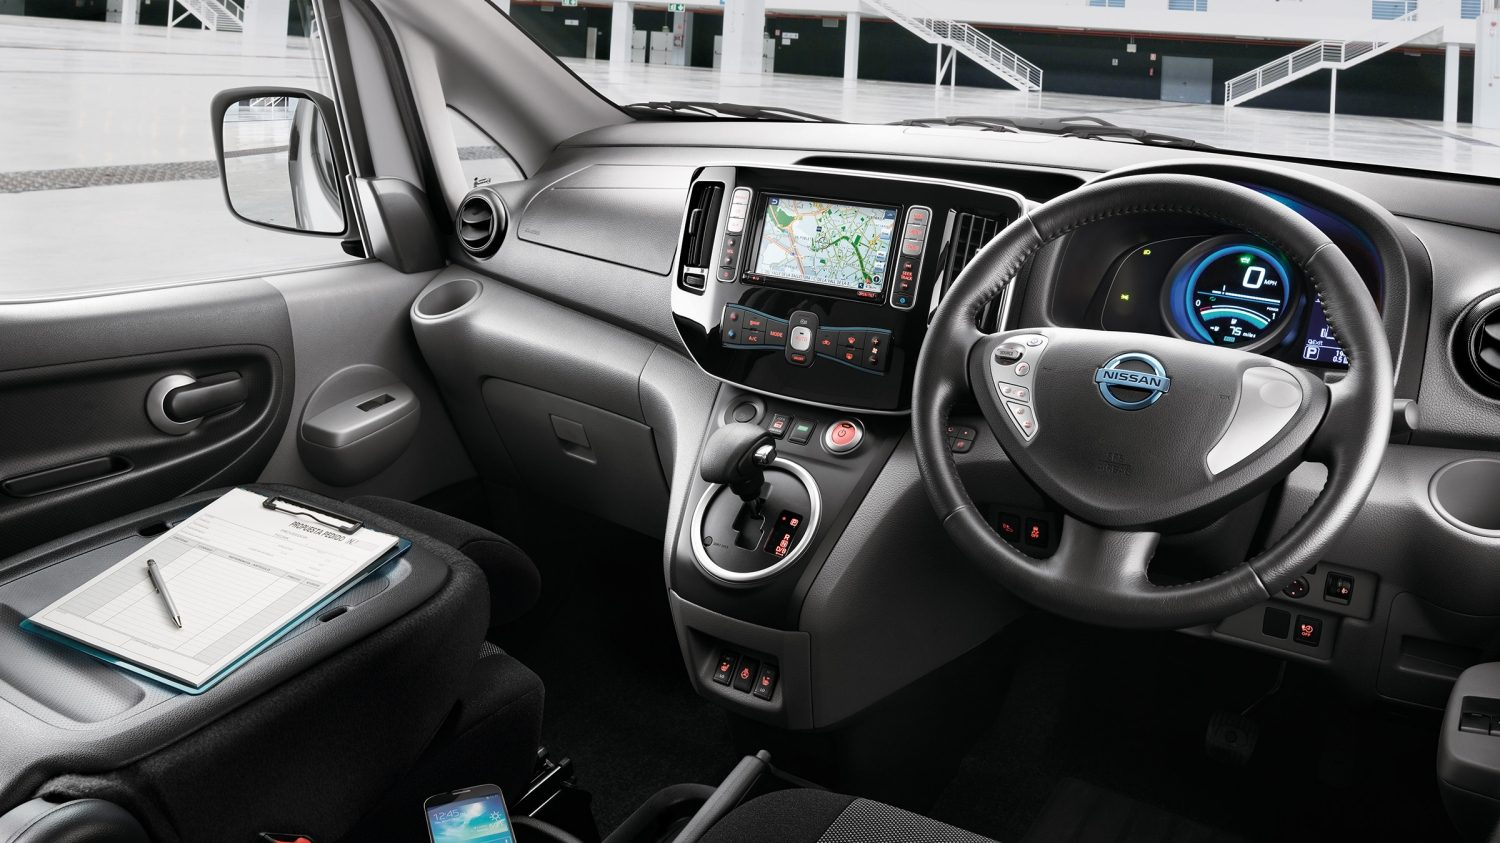 New Nissan e-NV200 VAN interior design